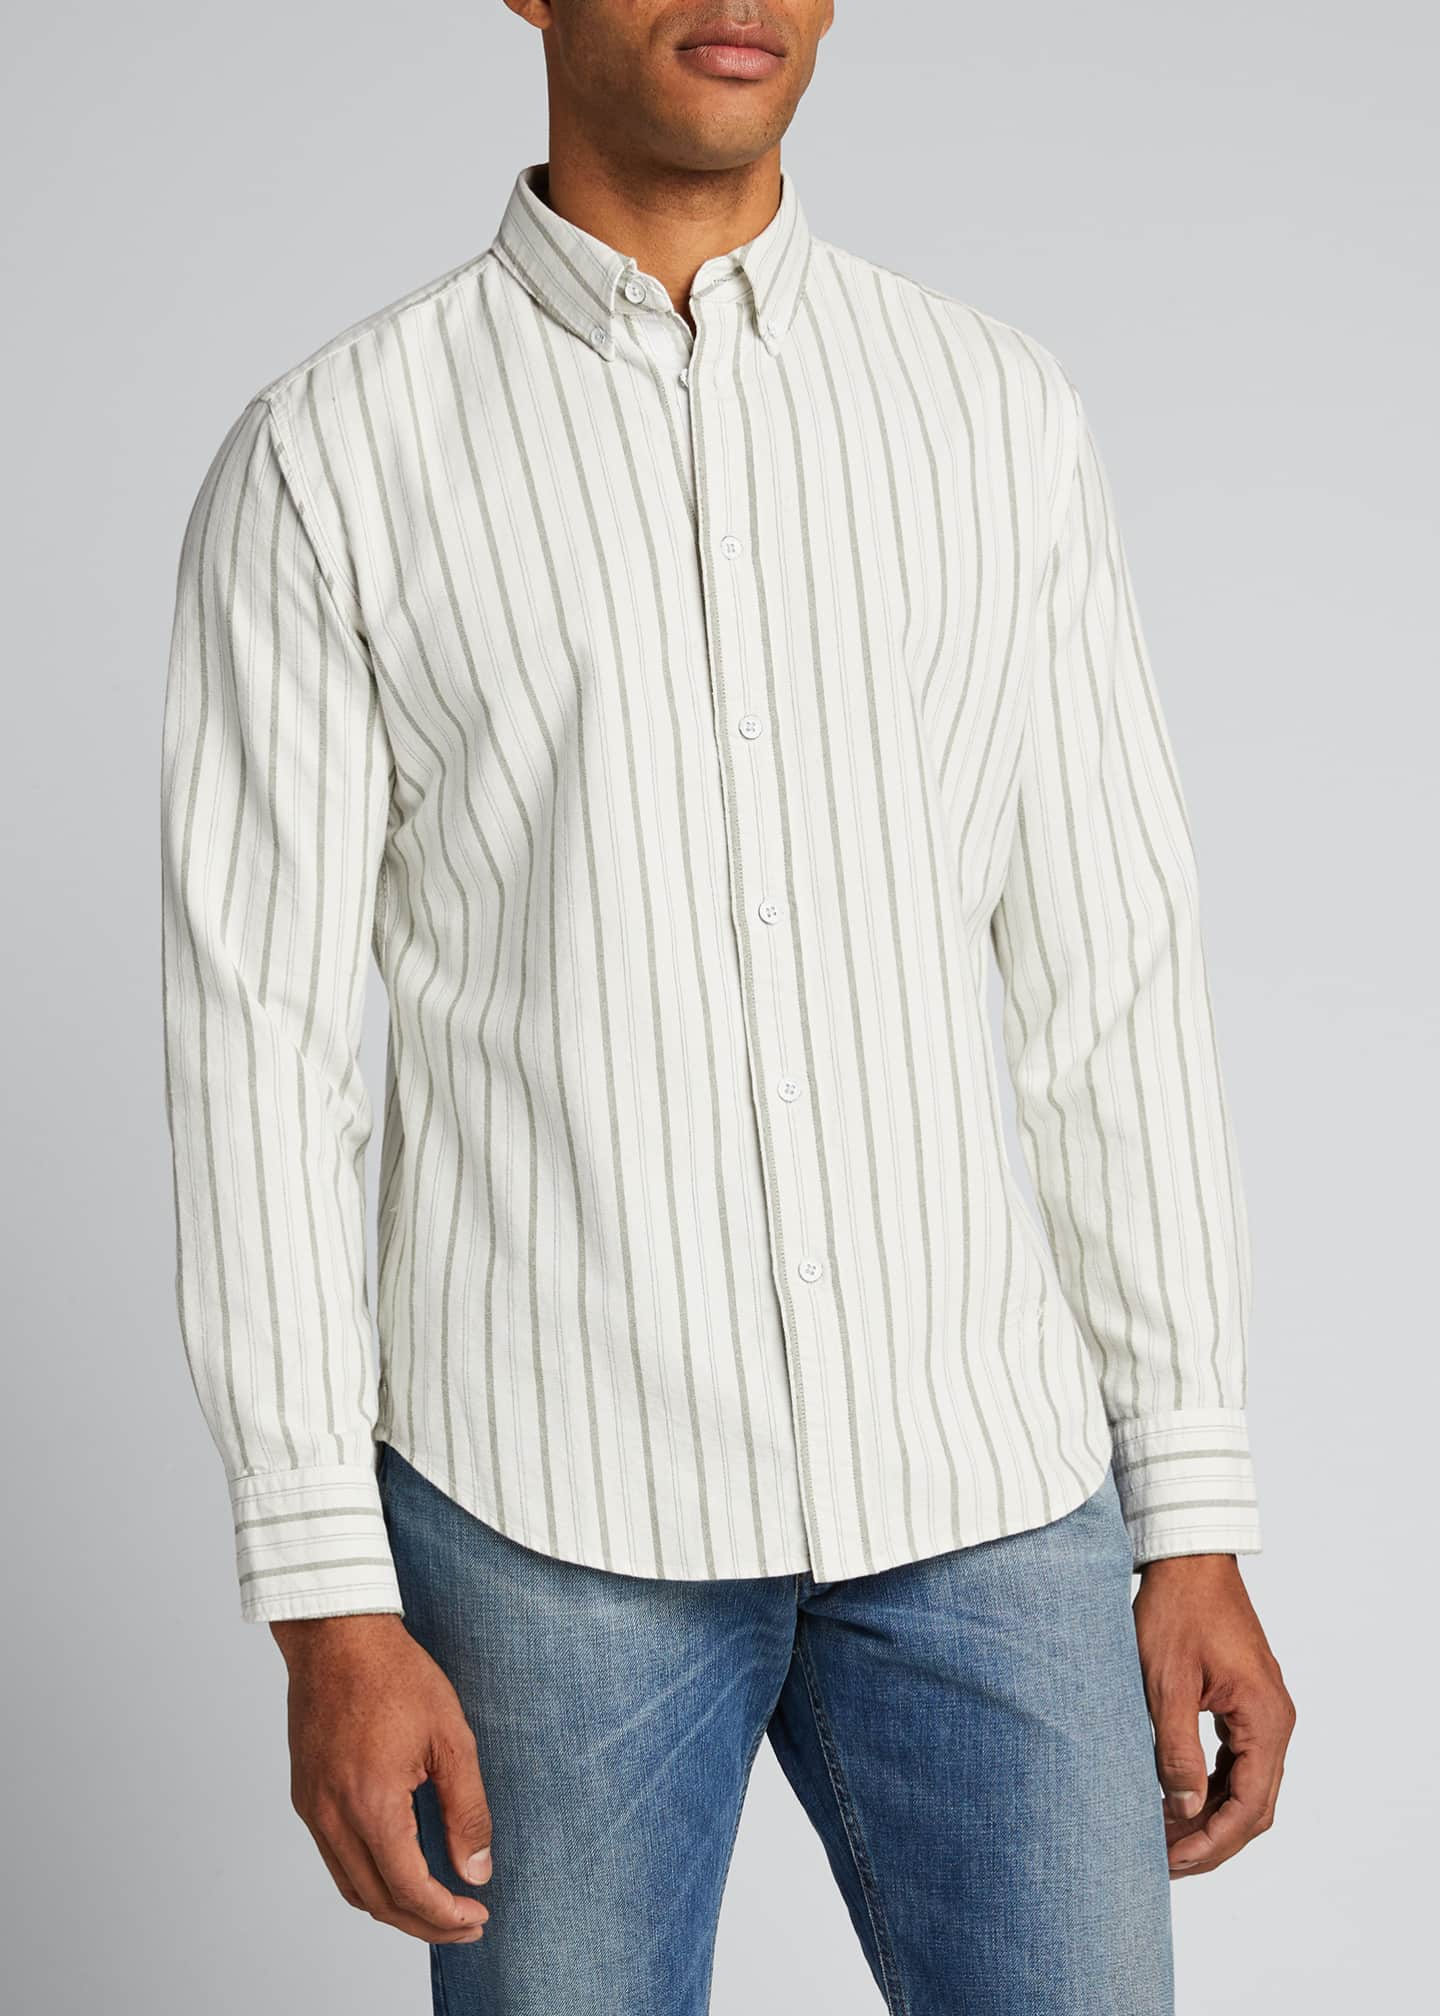 Image 3 of 5: Men's Tomlin Striped Oxford Sport Shirt